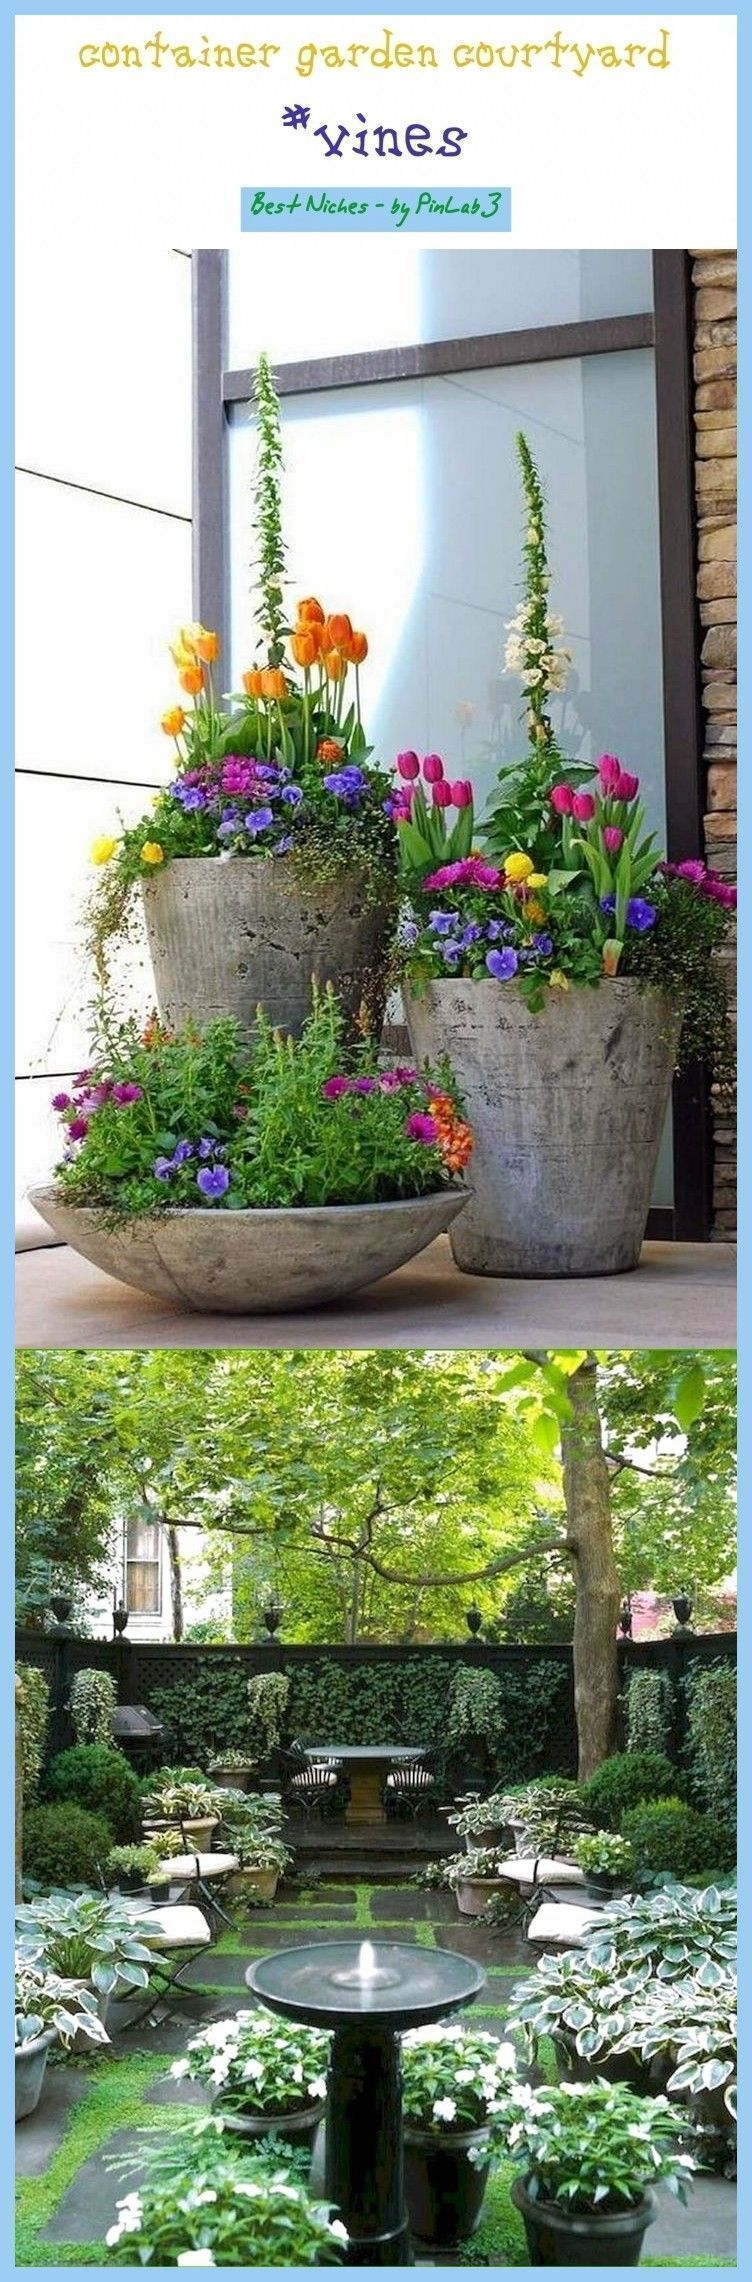 Photo of Container garden courtyard #container #garden #courtyard #container #garten … …